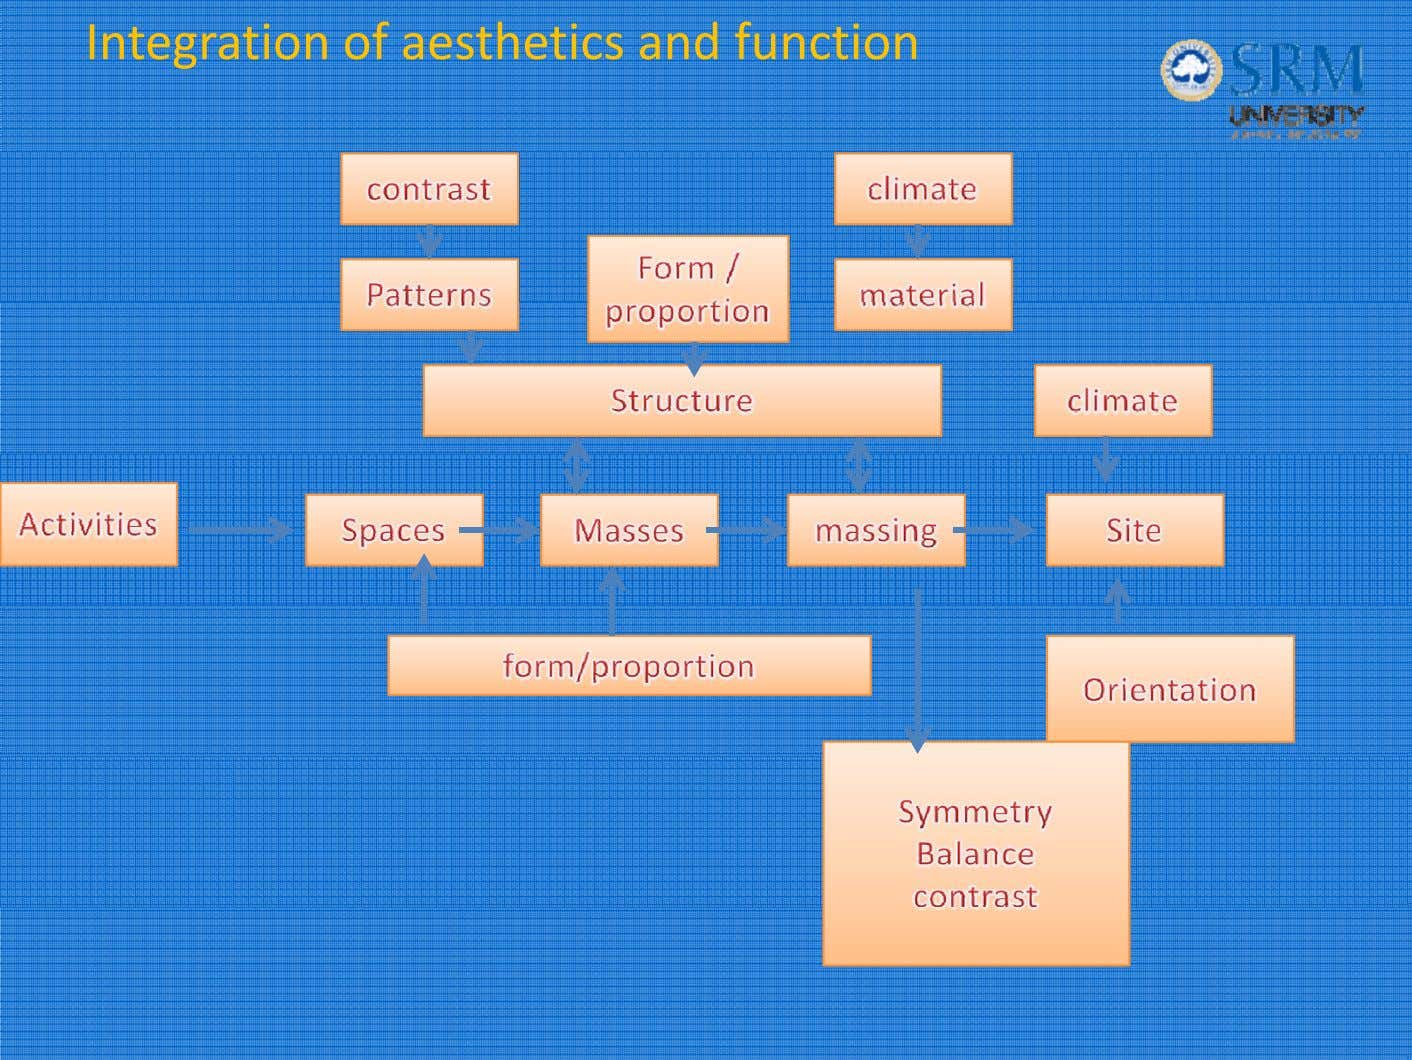 Integration of aesthetics and function